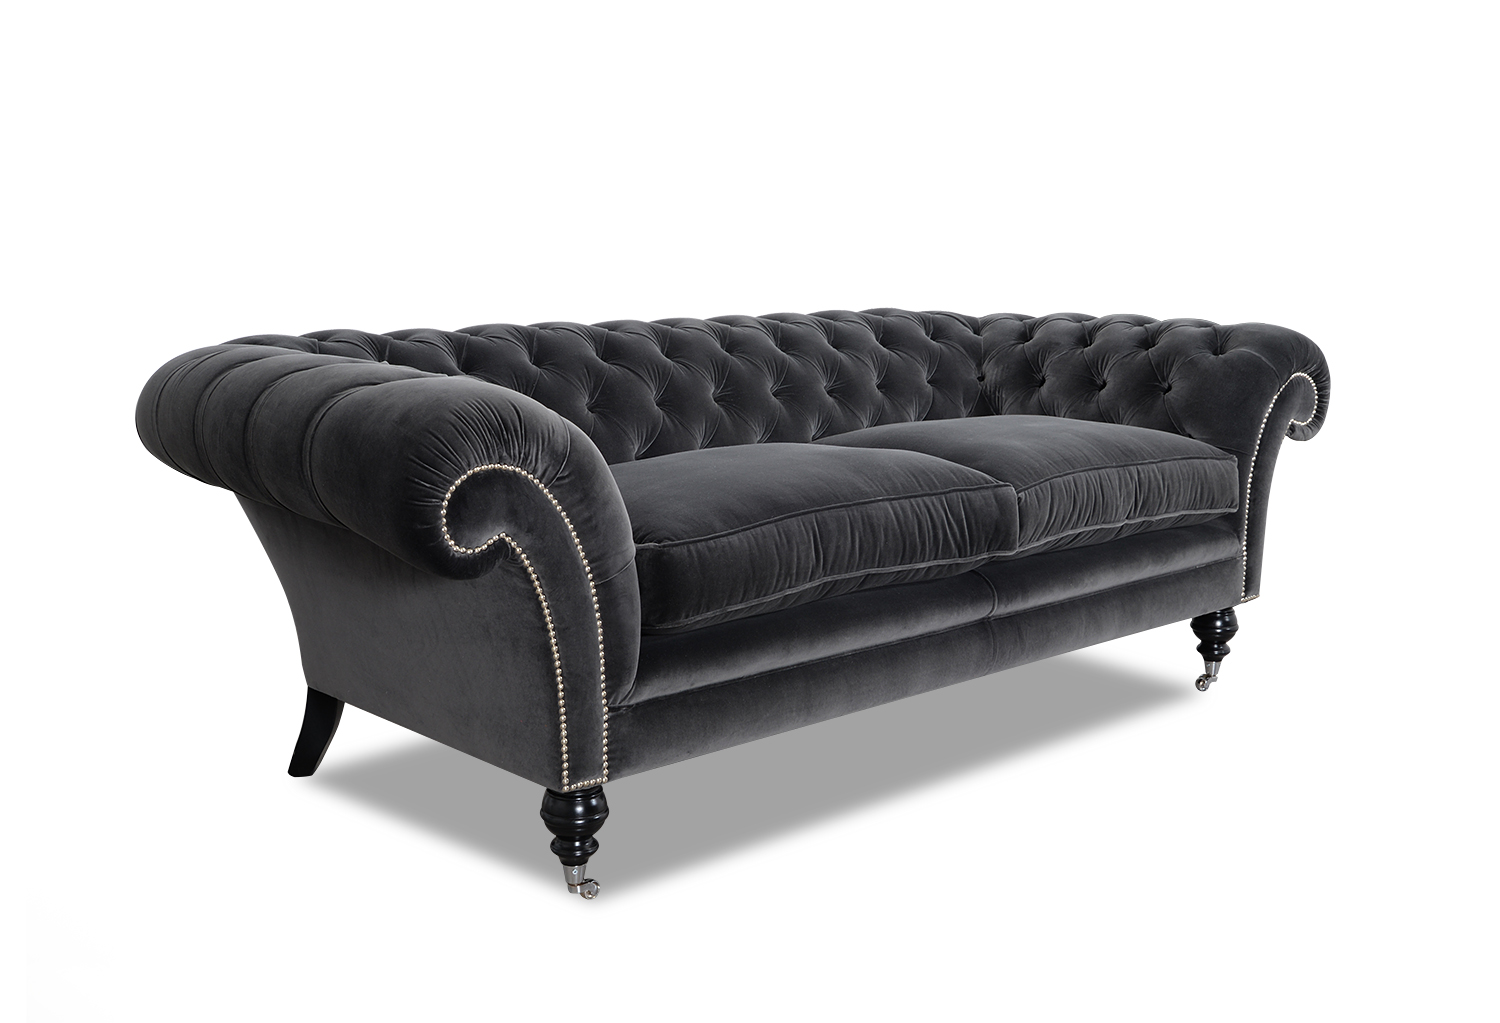 Chesterfield Sessel Samt Anna Chesterfield Sofa Samt 2 Sitzer Chesterfield Sofa Big